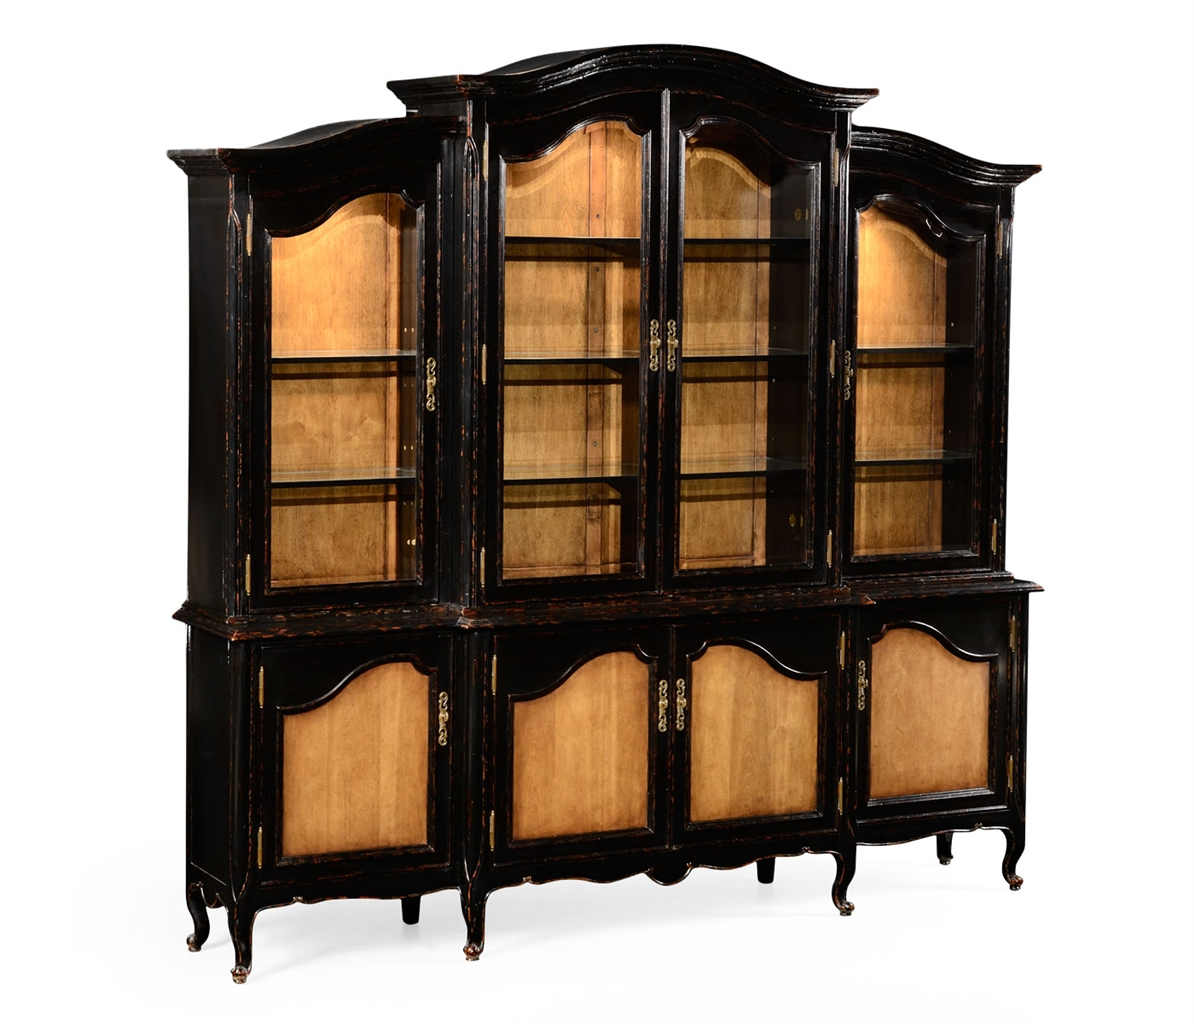 Breakfronts U0026 China Cabinets Display Cabinet French Country Furnishings